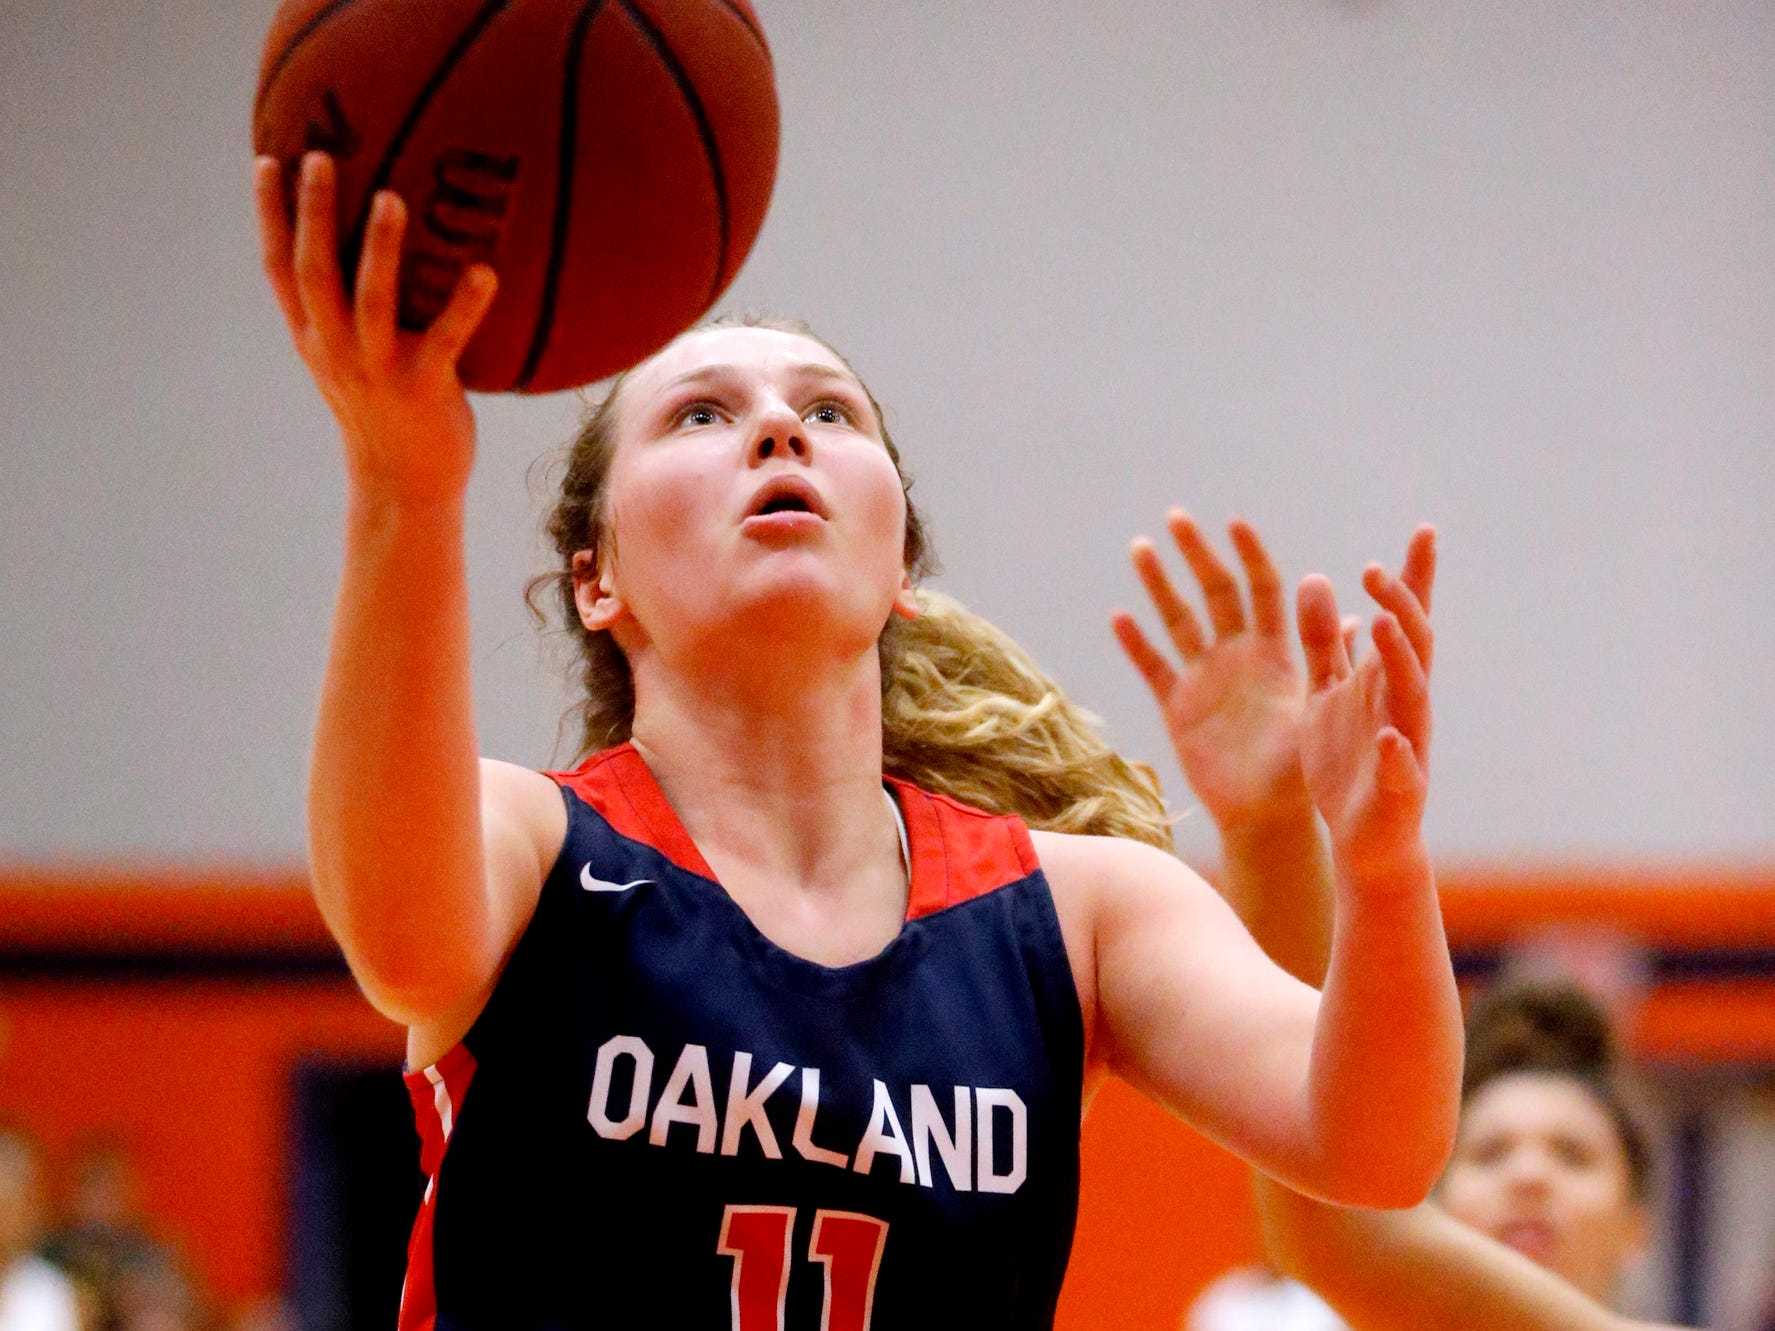 Oakland's Claira McGowan (11) goes up for a shot during the game against Blackman on Friday, Feb. 8, 2019.